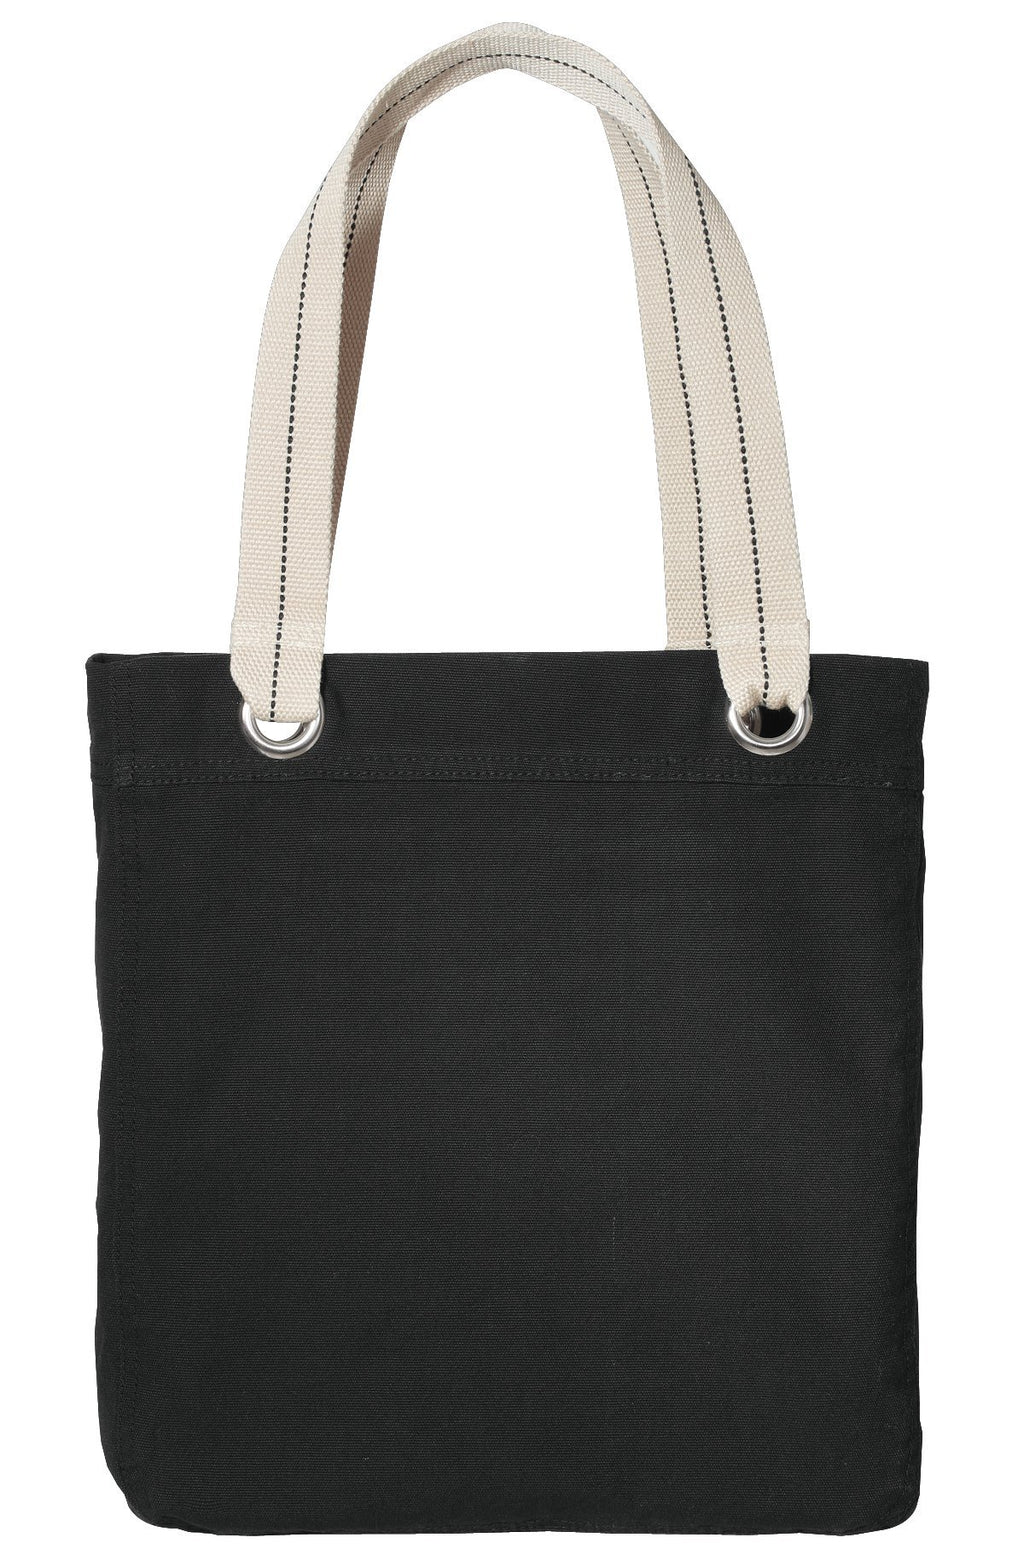 Bag Canvas Tote Bag BLACK Heavy Canvas tote Bag With Natural Color handle